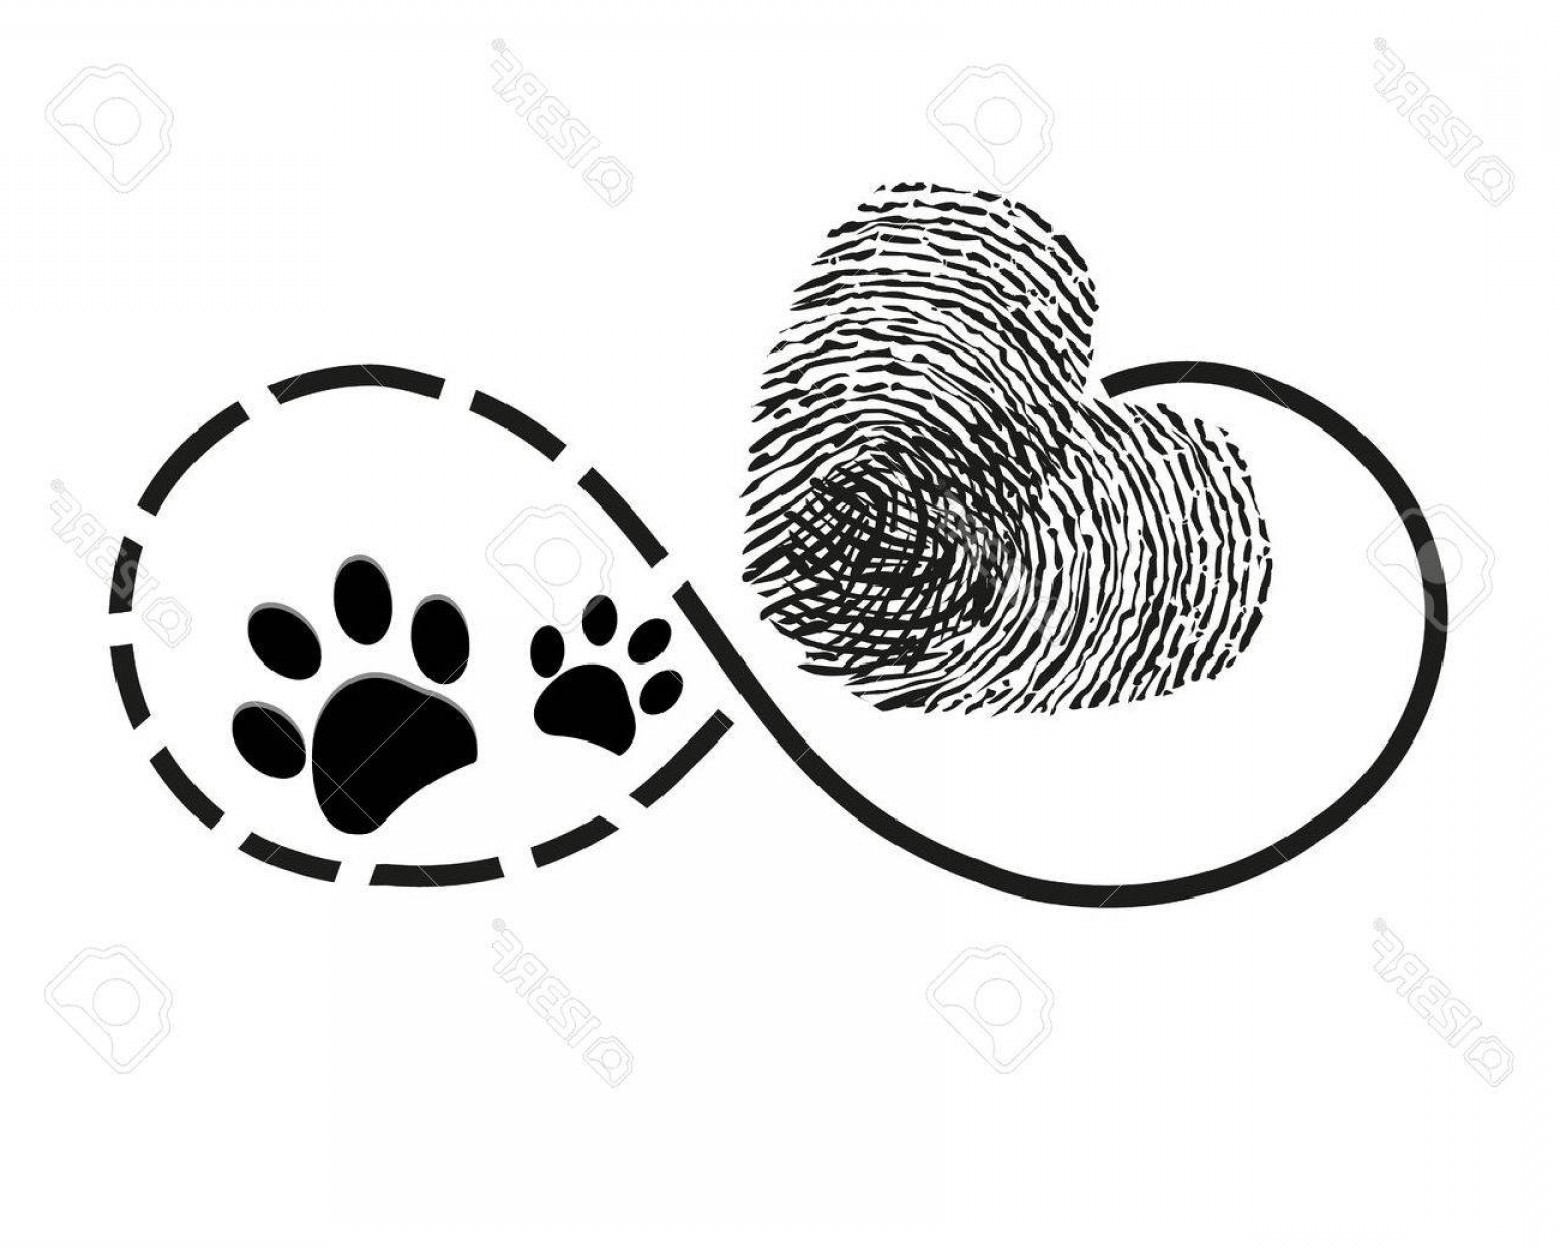 Infinity Heart Tattoo Vector: Photostock Vector Eternity With Finger Print And Dog Paw Prints Heart Symbol Tattoo Vector Illustration